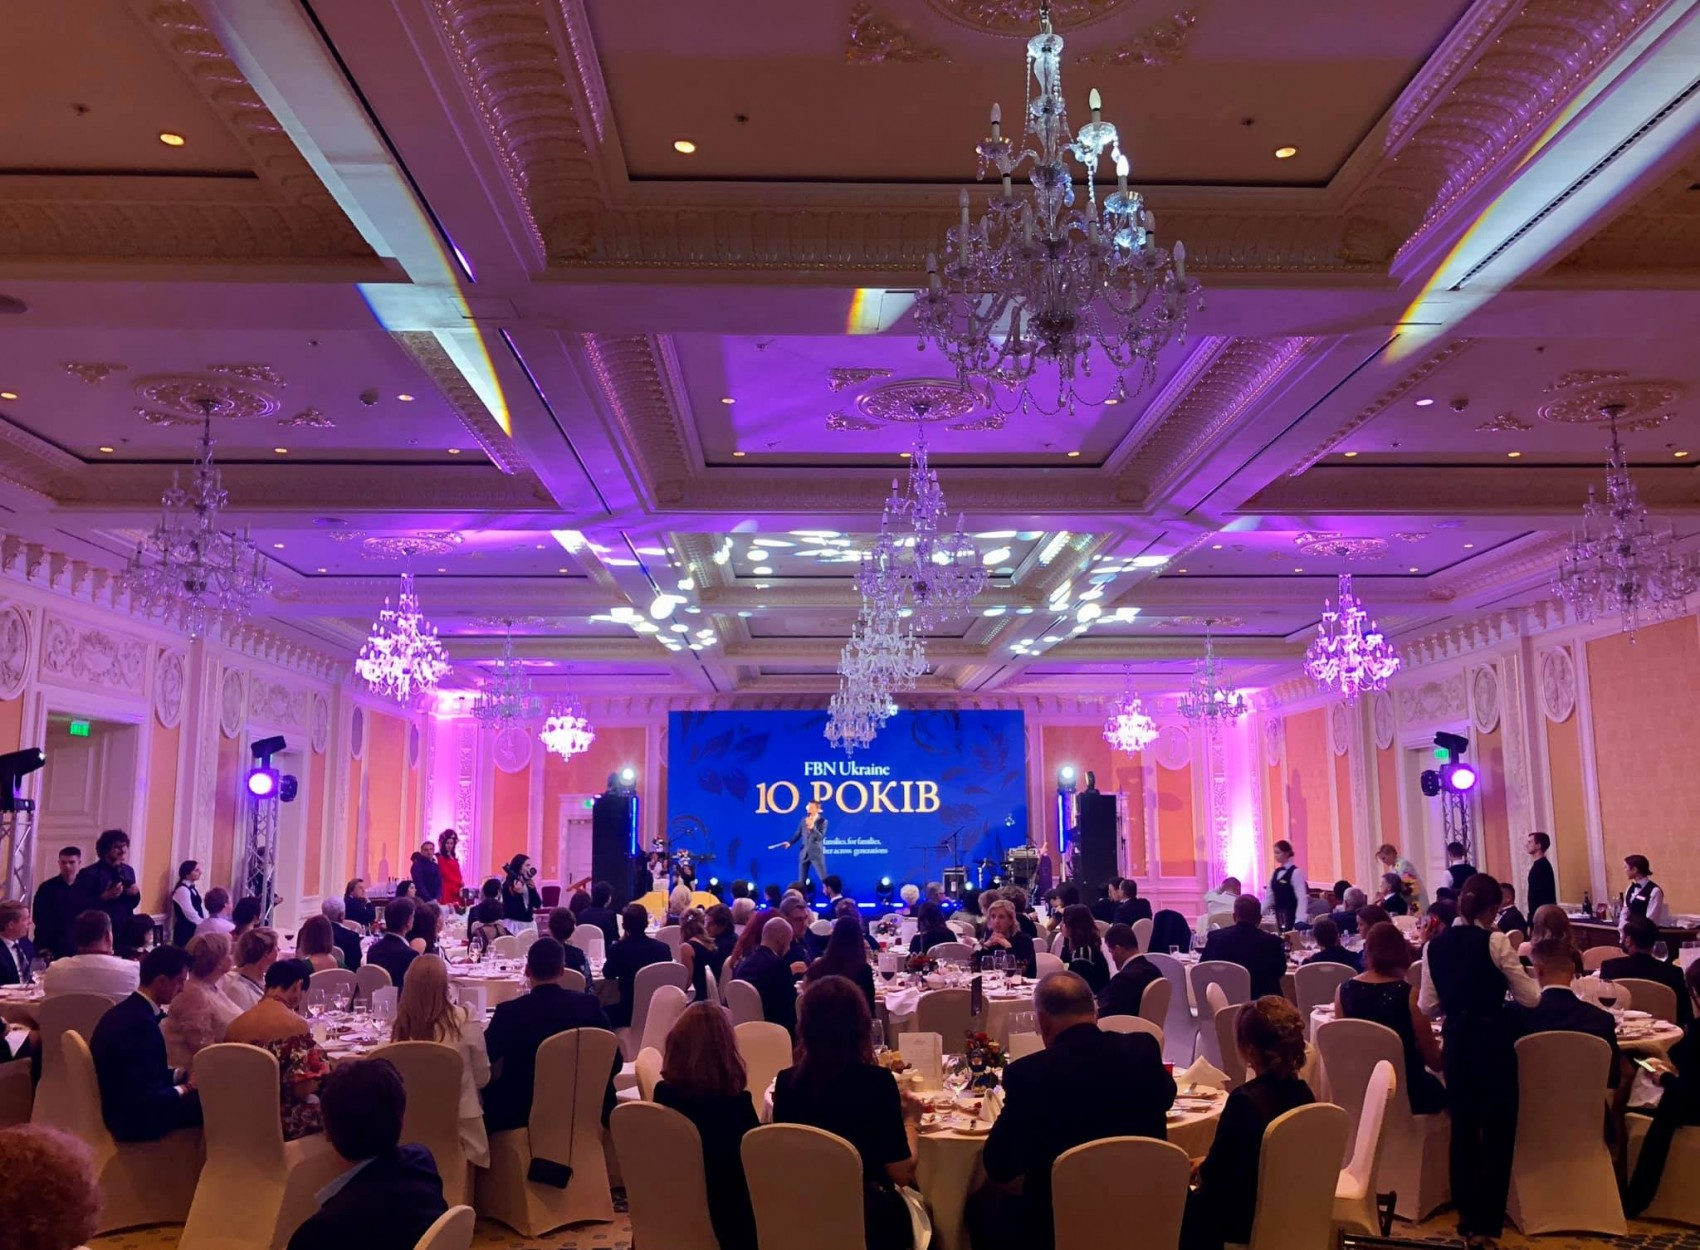 On December 7, the solemn ceremony of awarding the best family business in 2019 was held